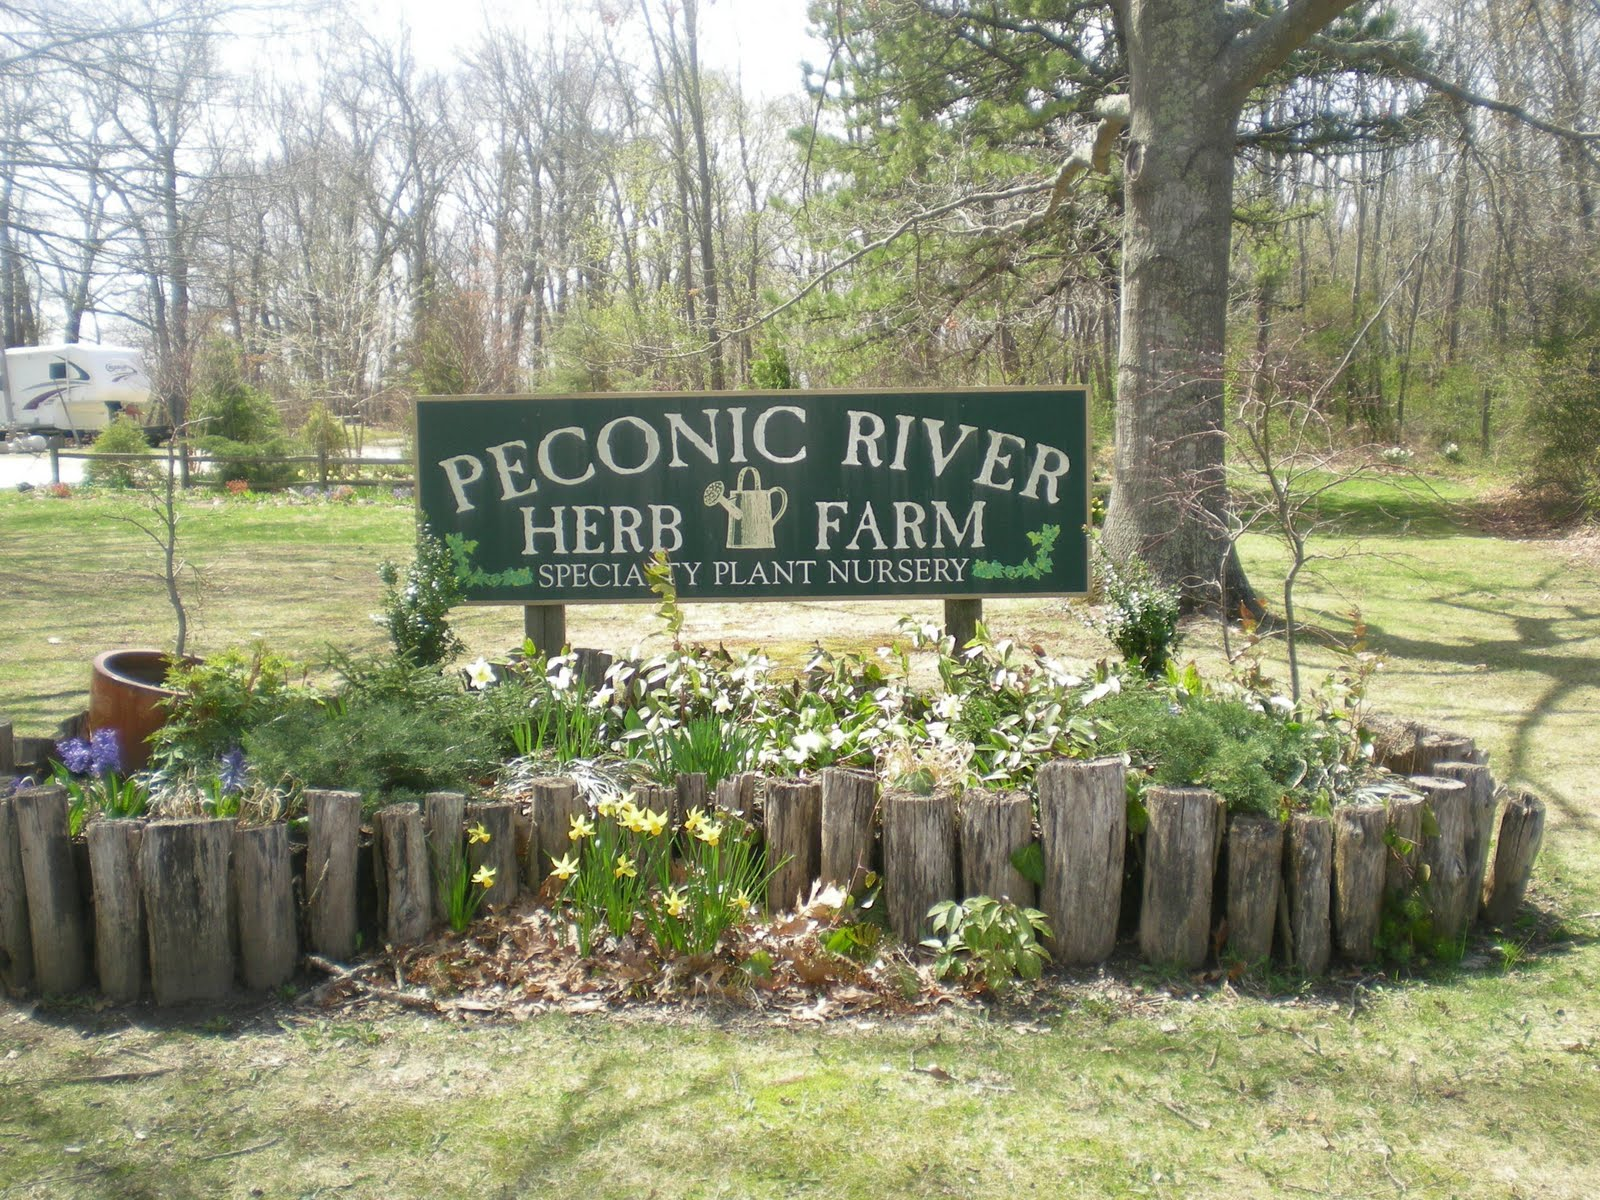 peconic women Meet single women in peconic ct online & chat in the forums dhu is a 100% free dating site to find single women in peconic.